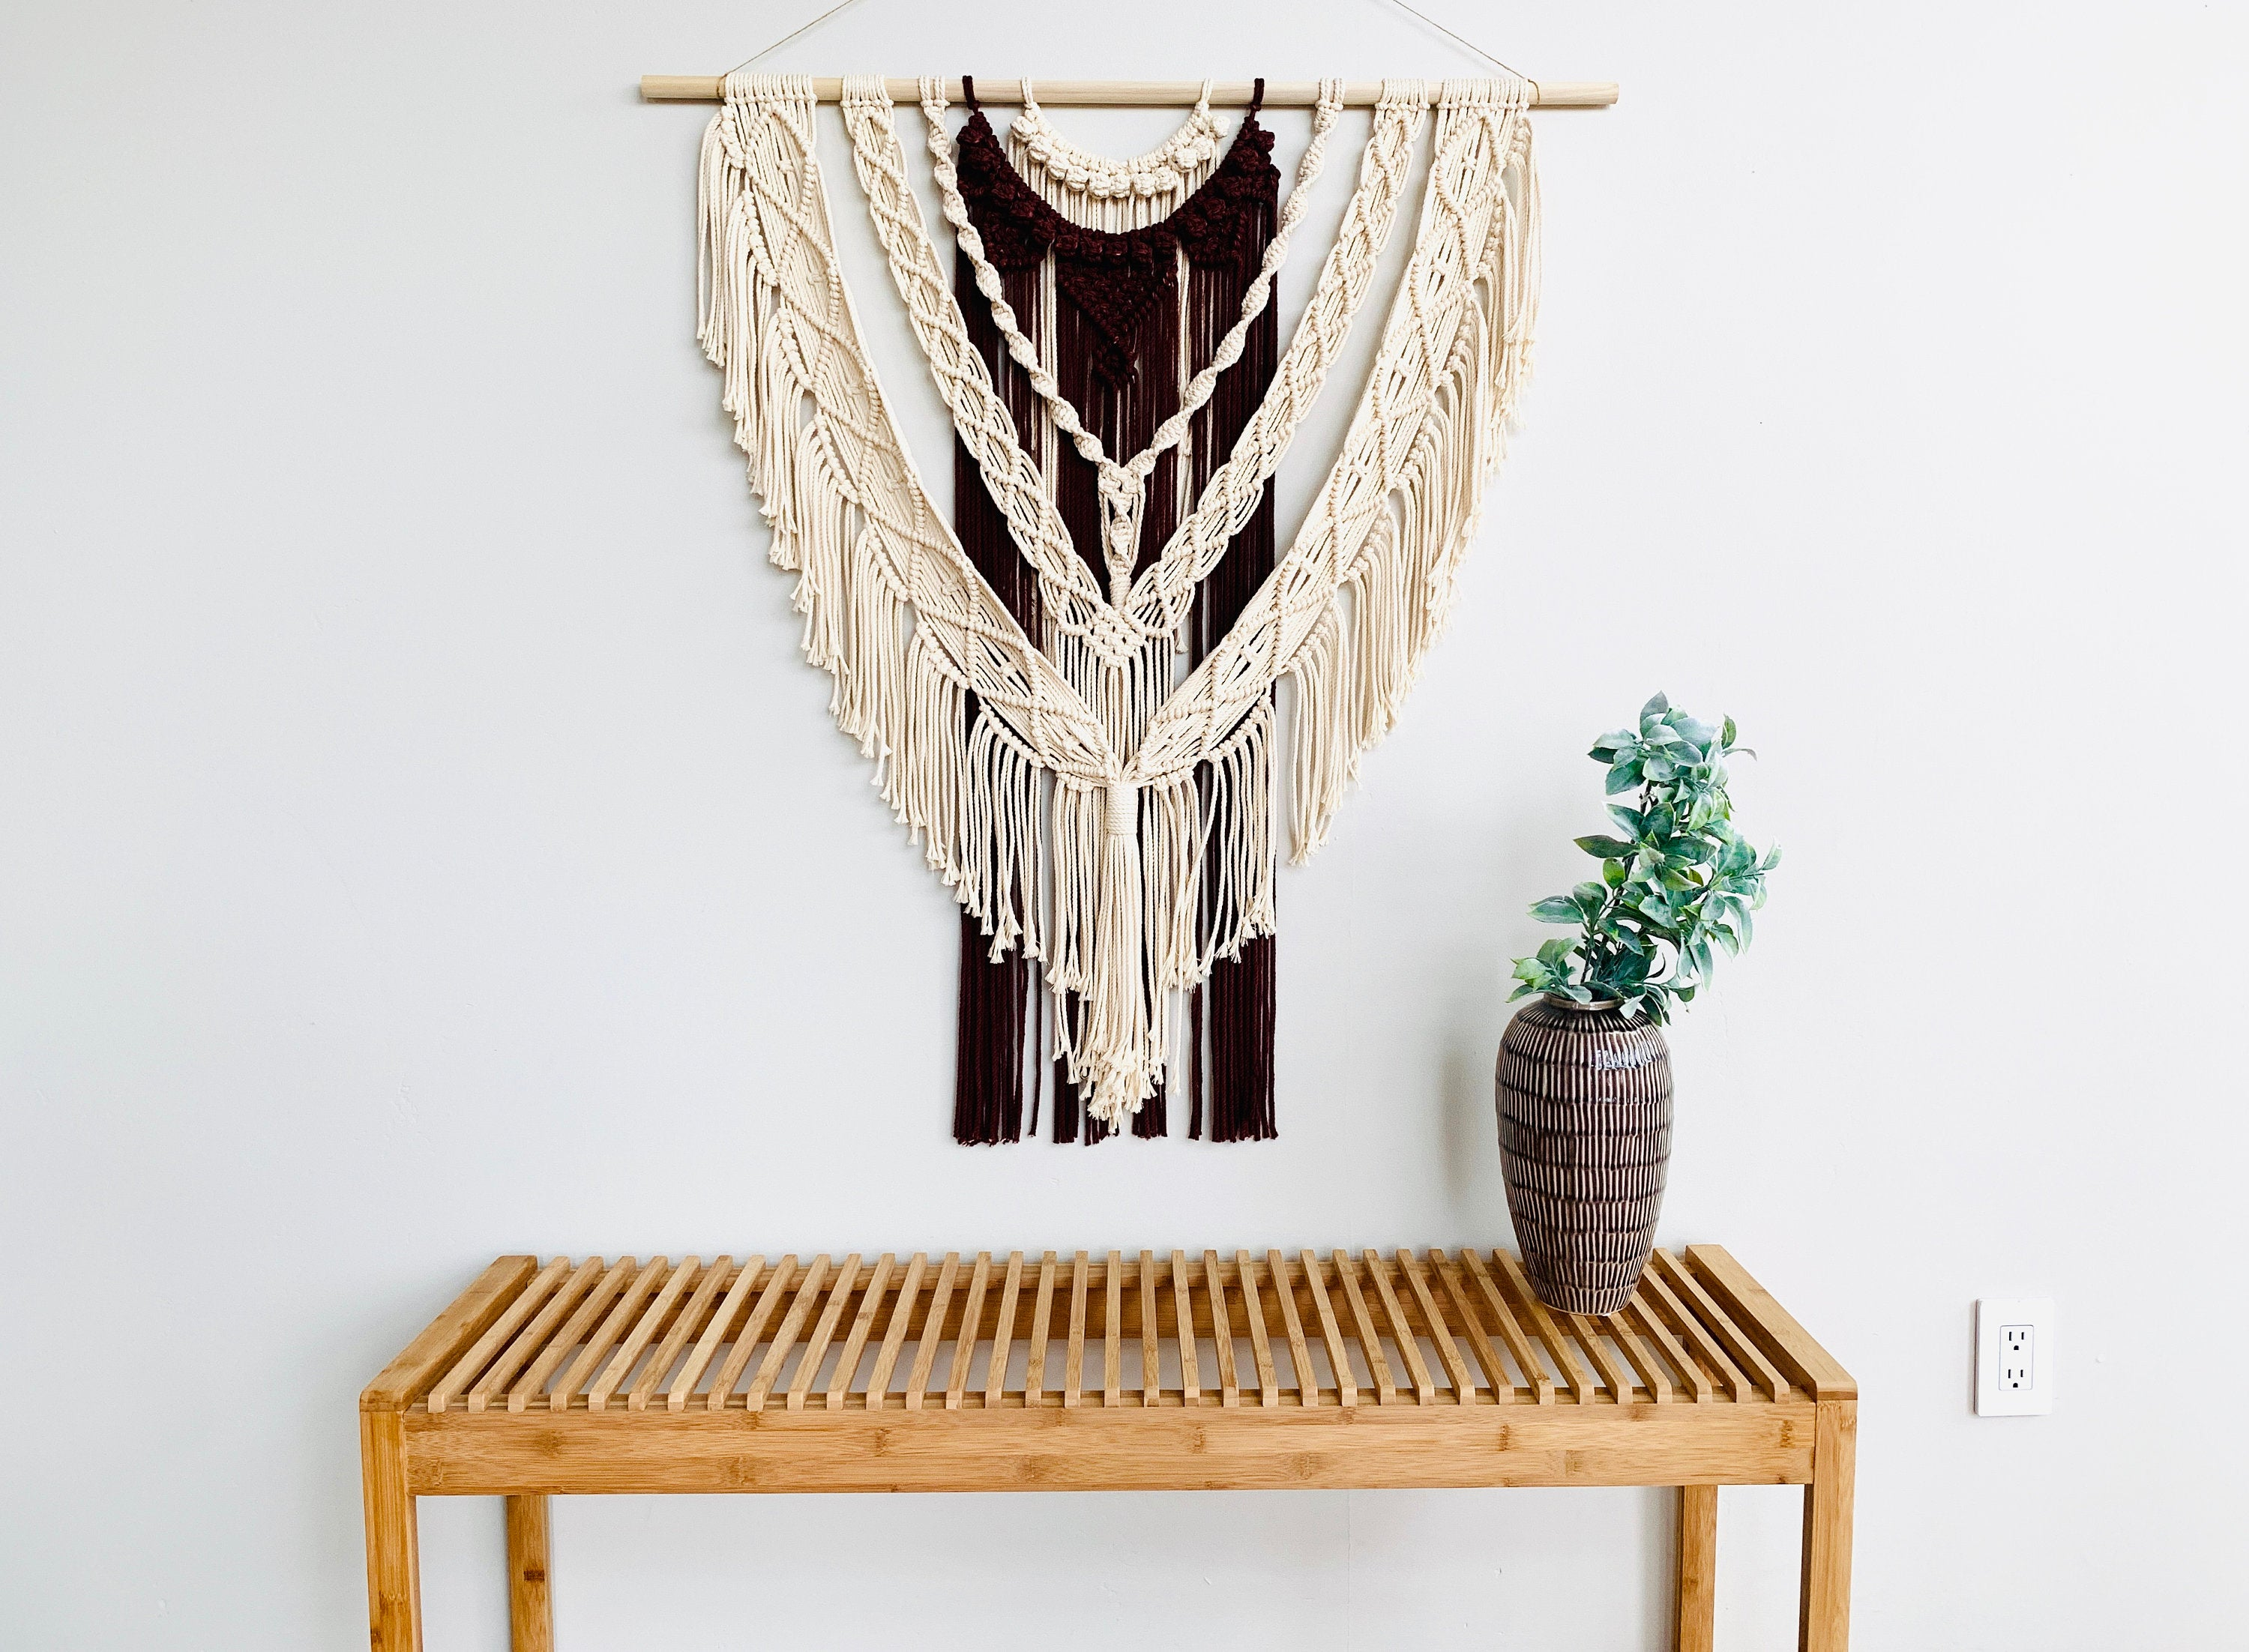 Extra Large Layered Macrame Wall Hanging / Dyed Macrame Wall Decor Fiber Art / Layered Bohemian Macrame / Boho Decor